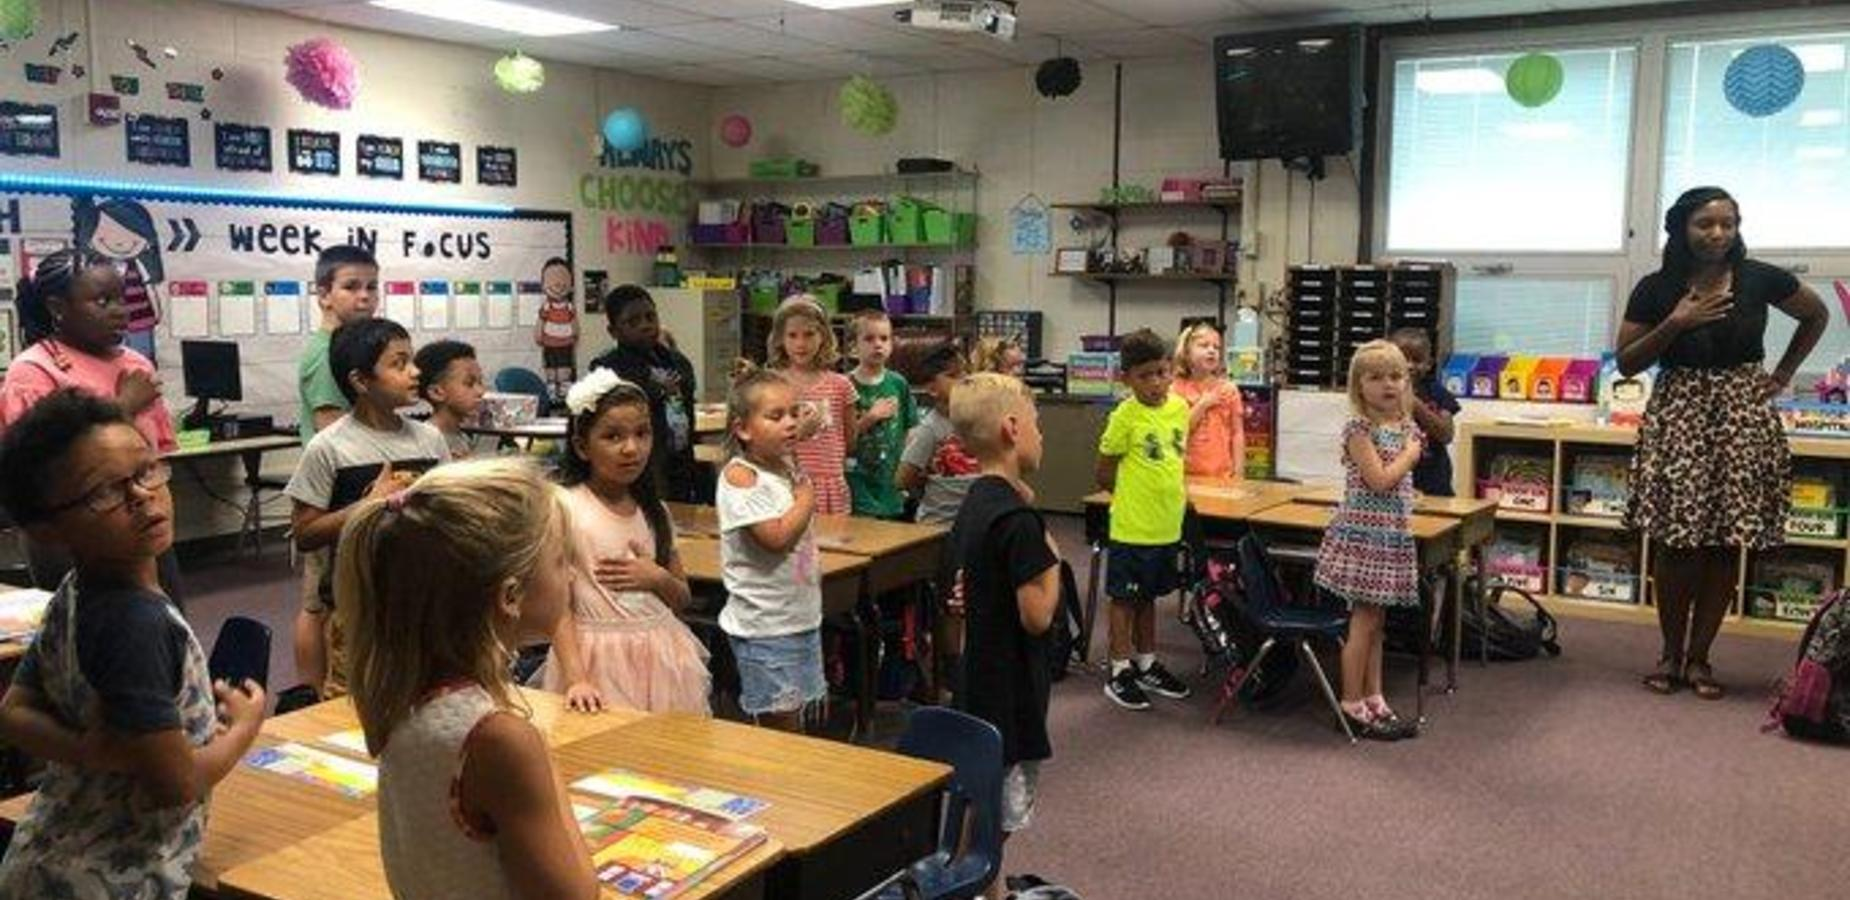 This is an image of a classroom with the teacher and her students reciting the Pledge of Allegiance to the flag in their classroom. The students all have their hands over their hearts.